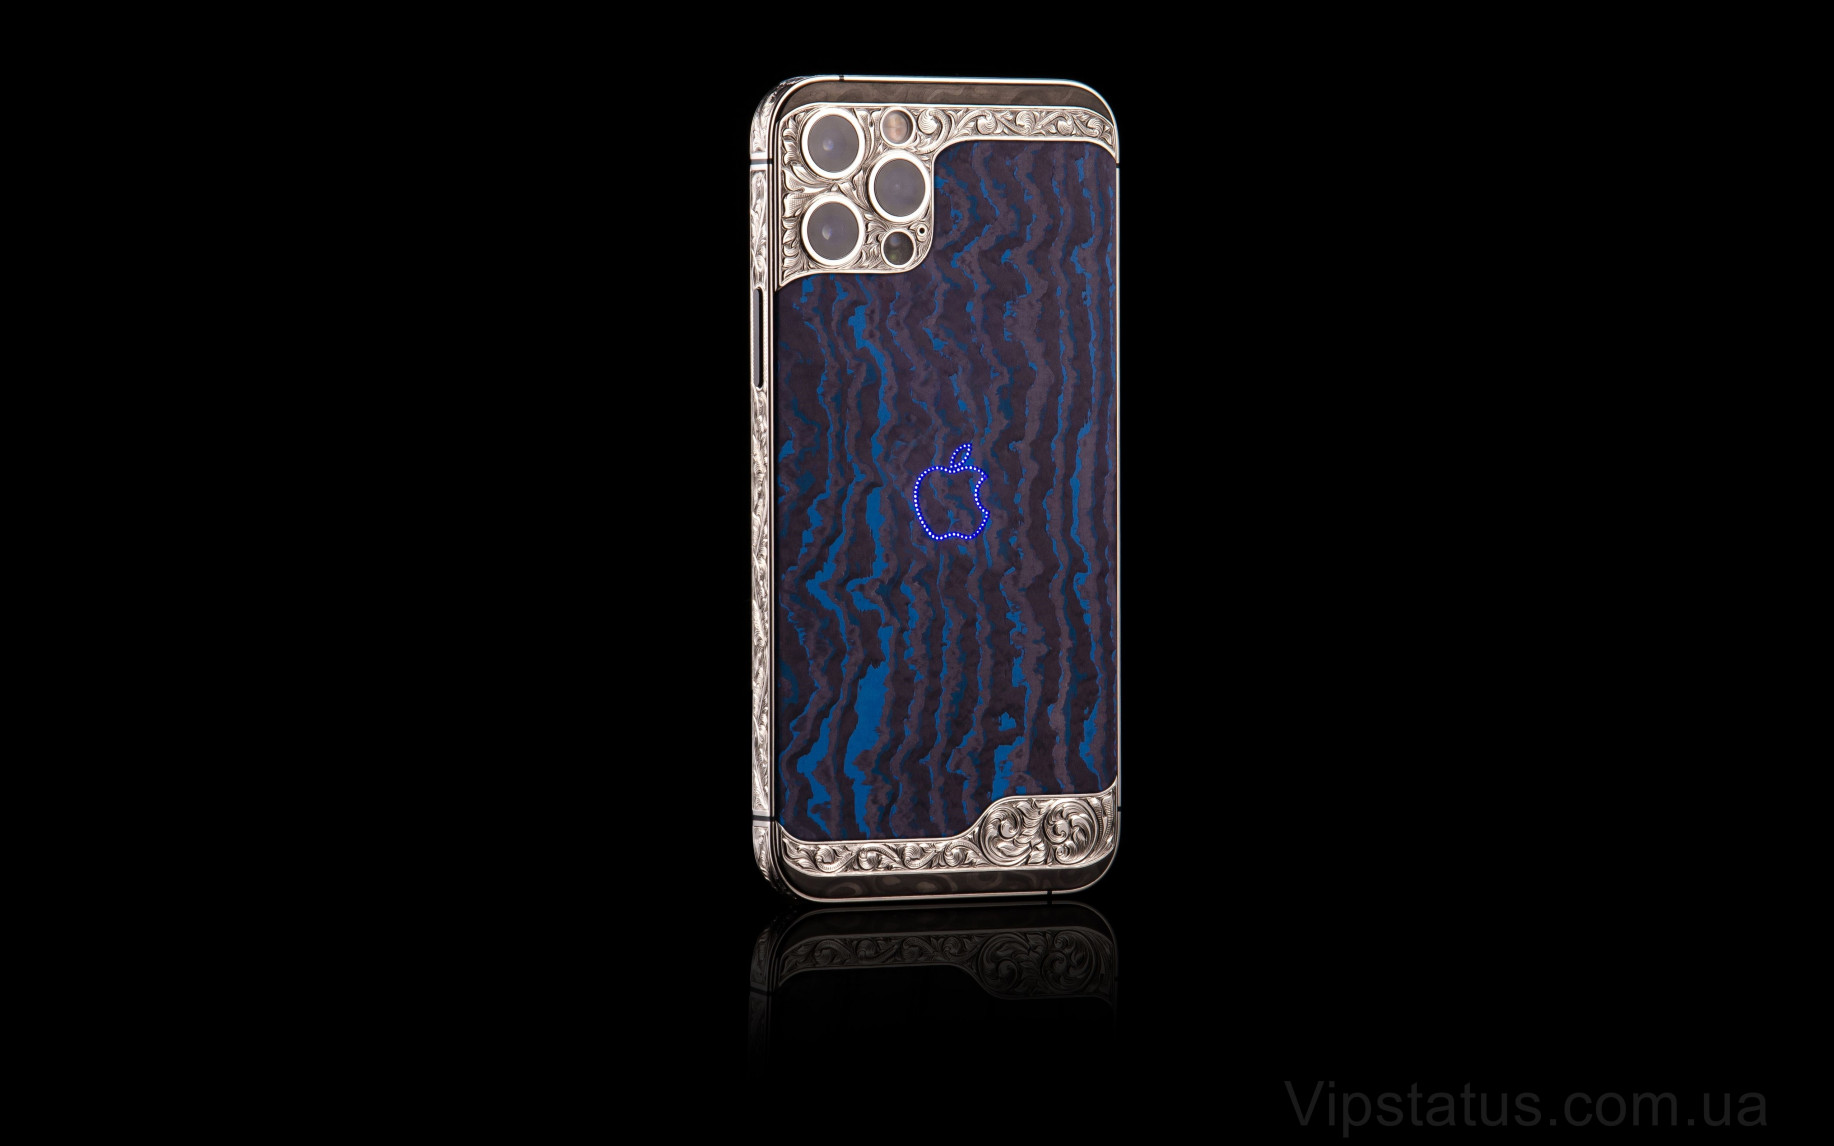 Elite Blue Dream Edition IPHONE 12 PRO MAX 512 GB Blue Dream Edition IPHONE 12 PRO MAX 512 GB image 5